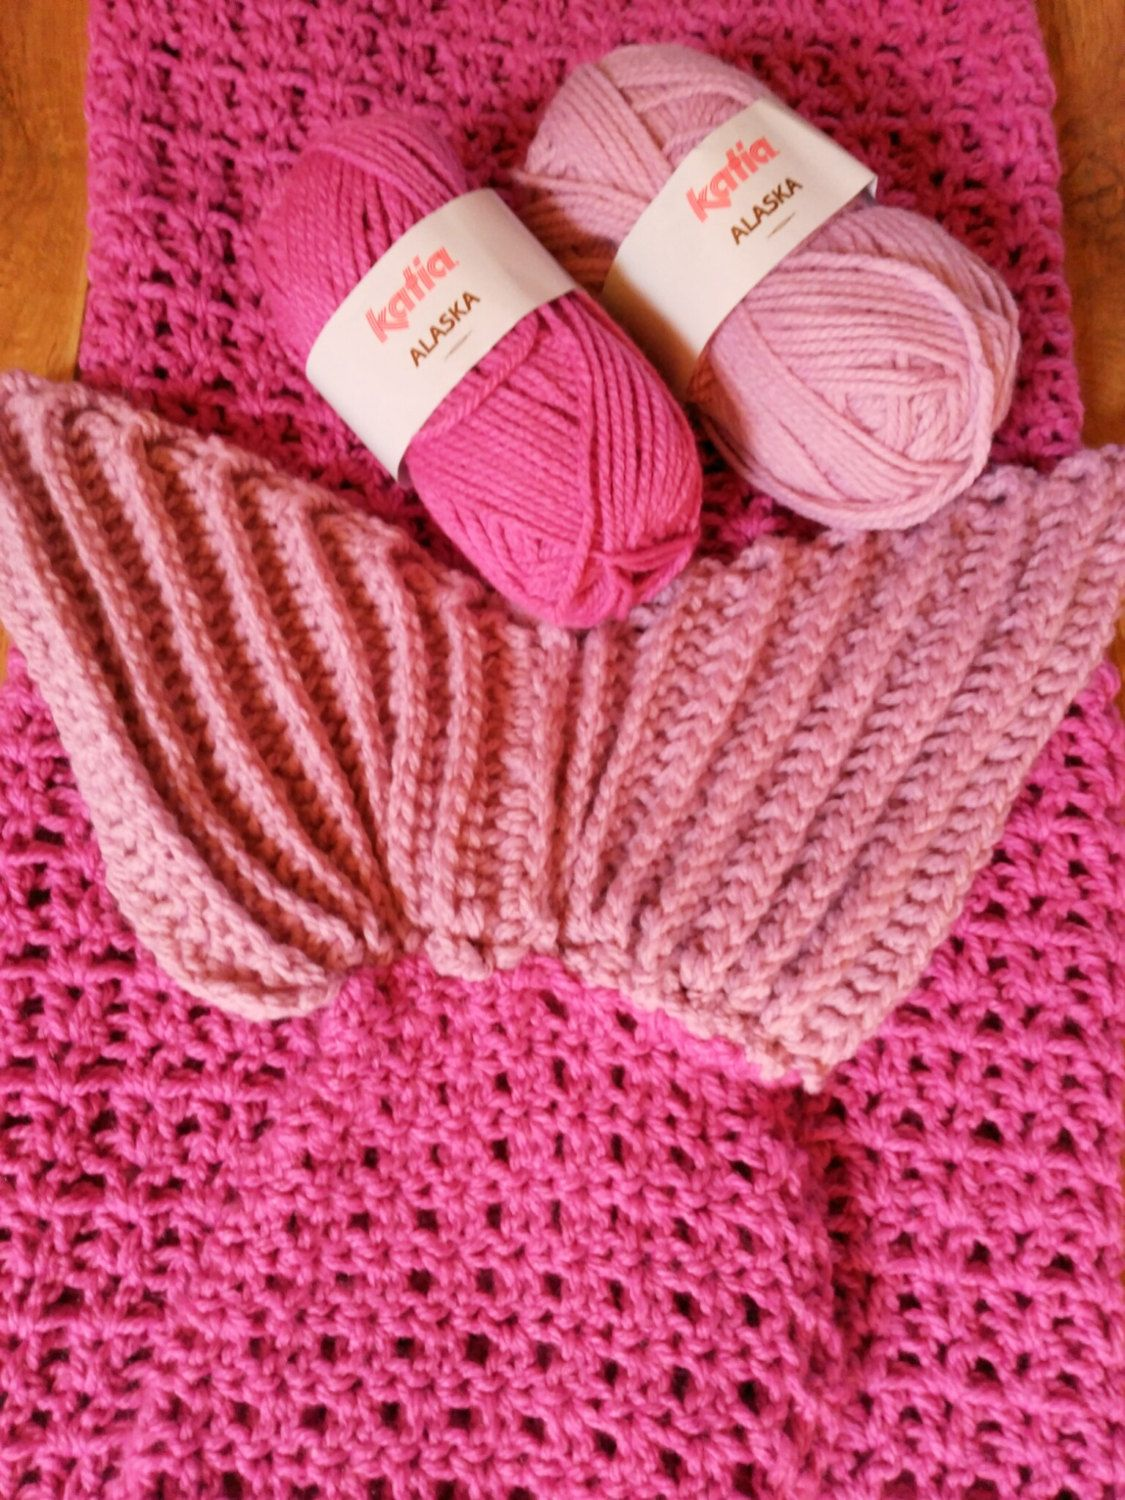 Mermaid blanket made of crocheted pink colors for adults or children ...